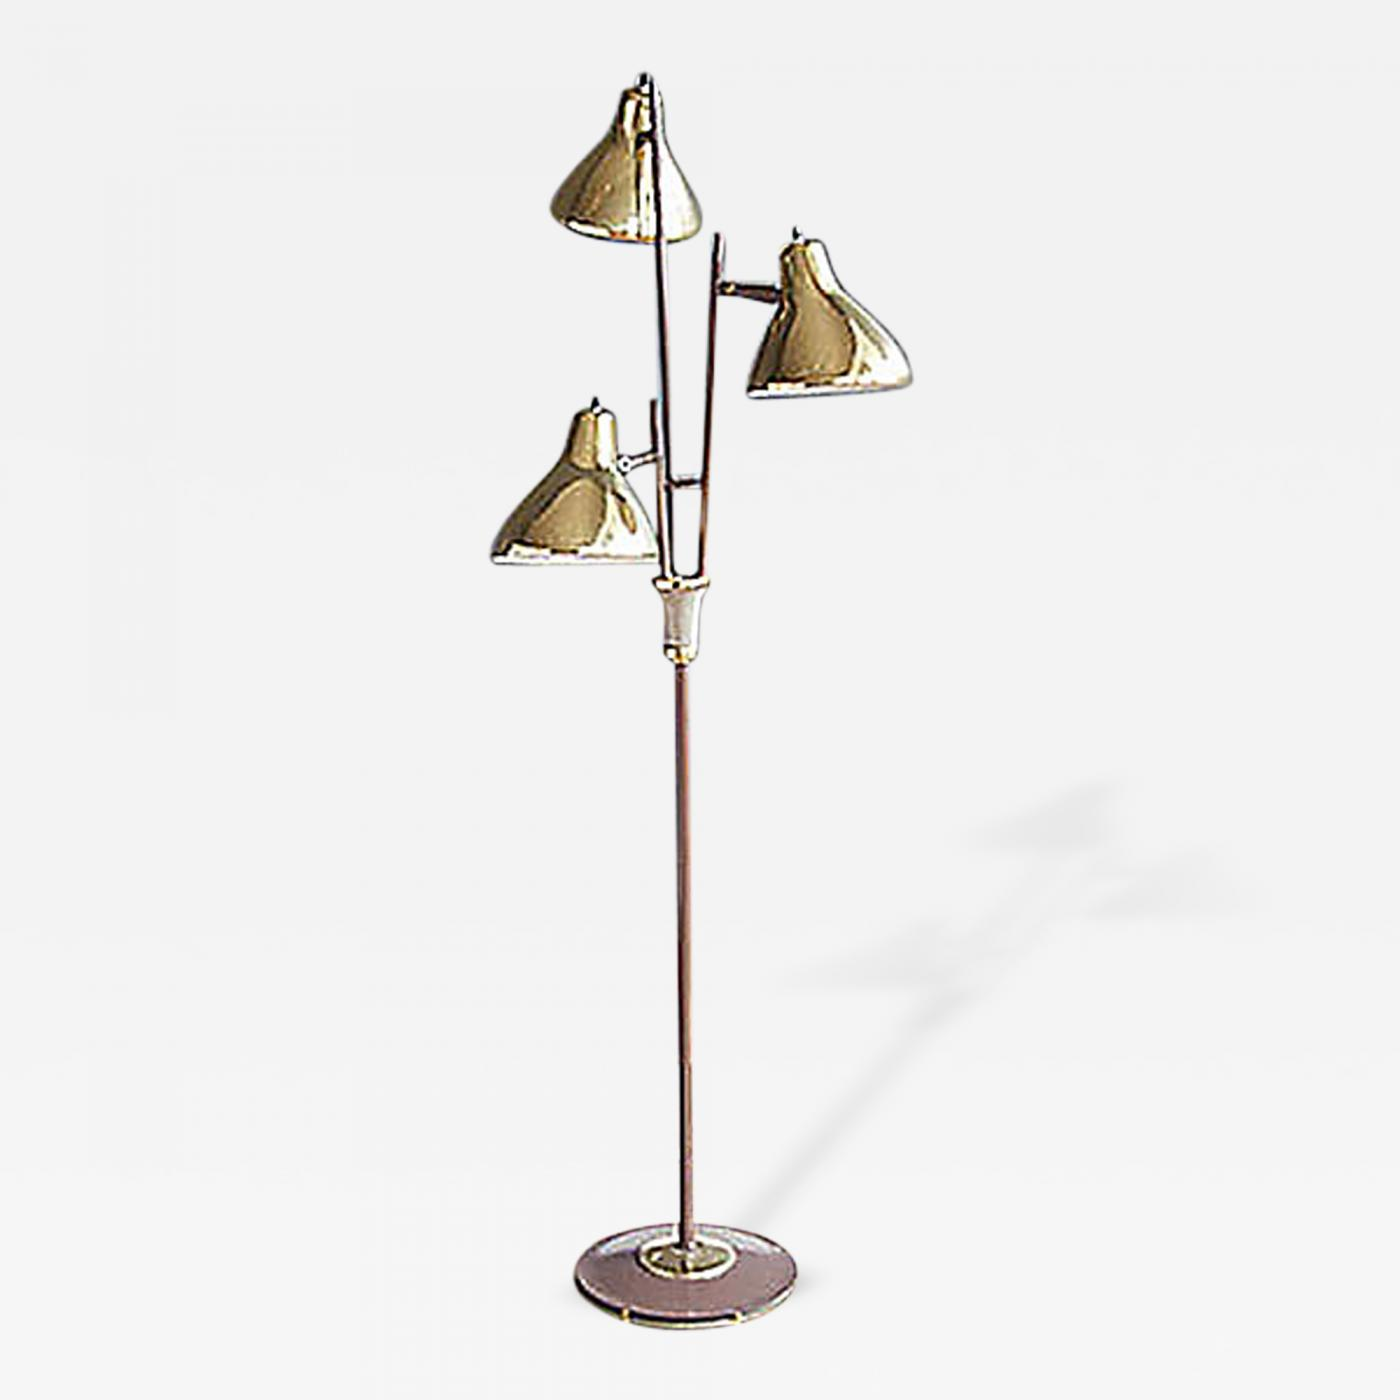 Gerald Thurston - Gerald Thurston Lightolier Floor Lamp